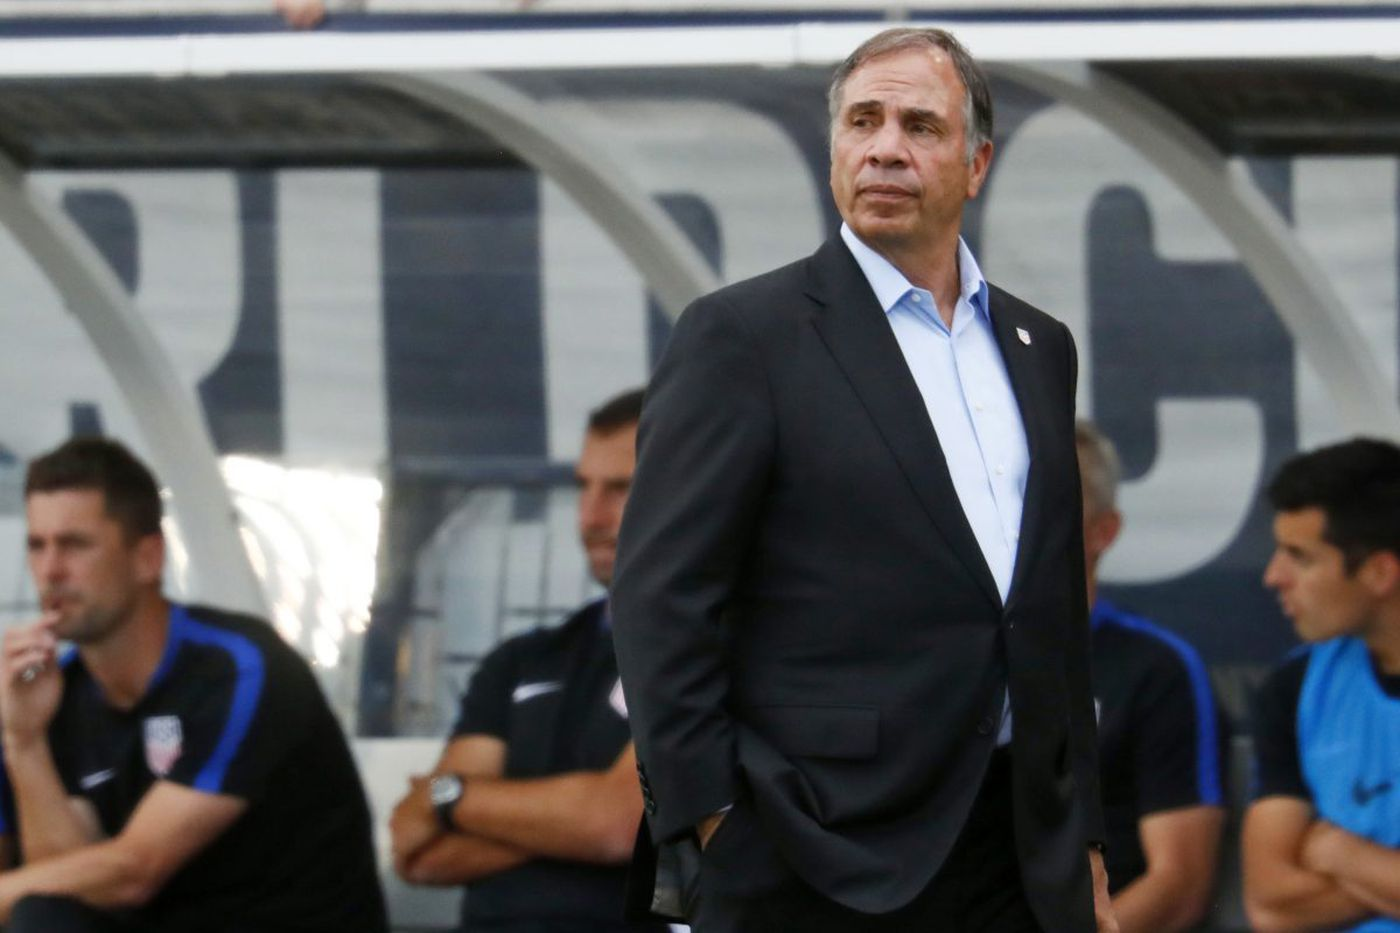 Bruce Arena hints at exit clause at U.S. Soccer contract, doesn't blame Sunil Gulati for failure